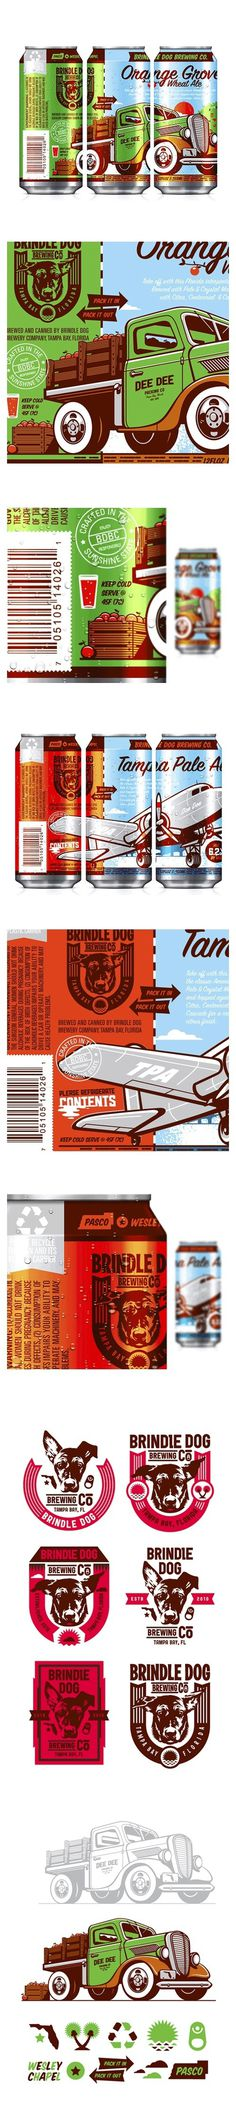 Brindle Dog Brewing Co. #beer #packaging #florida #illustration #cans